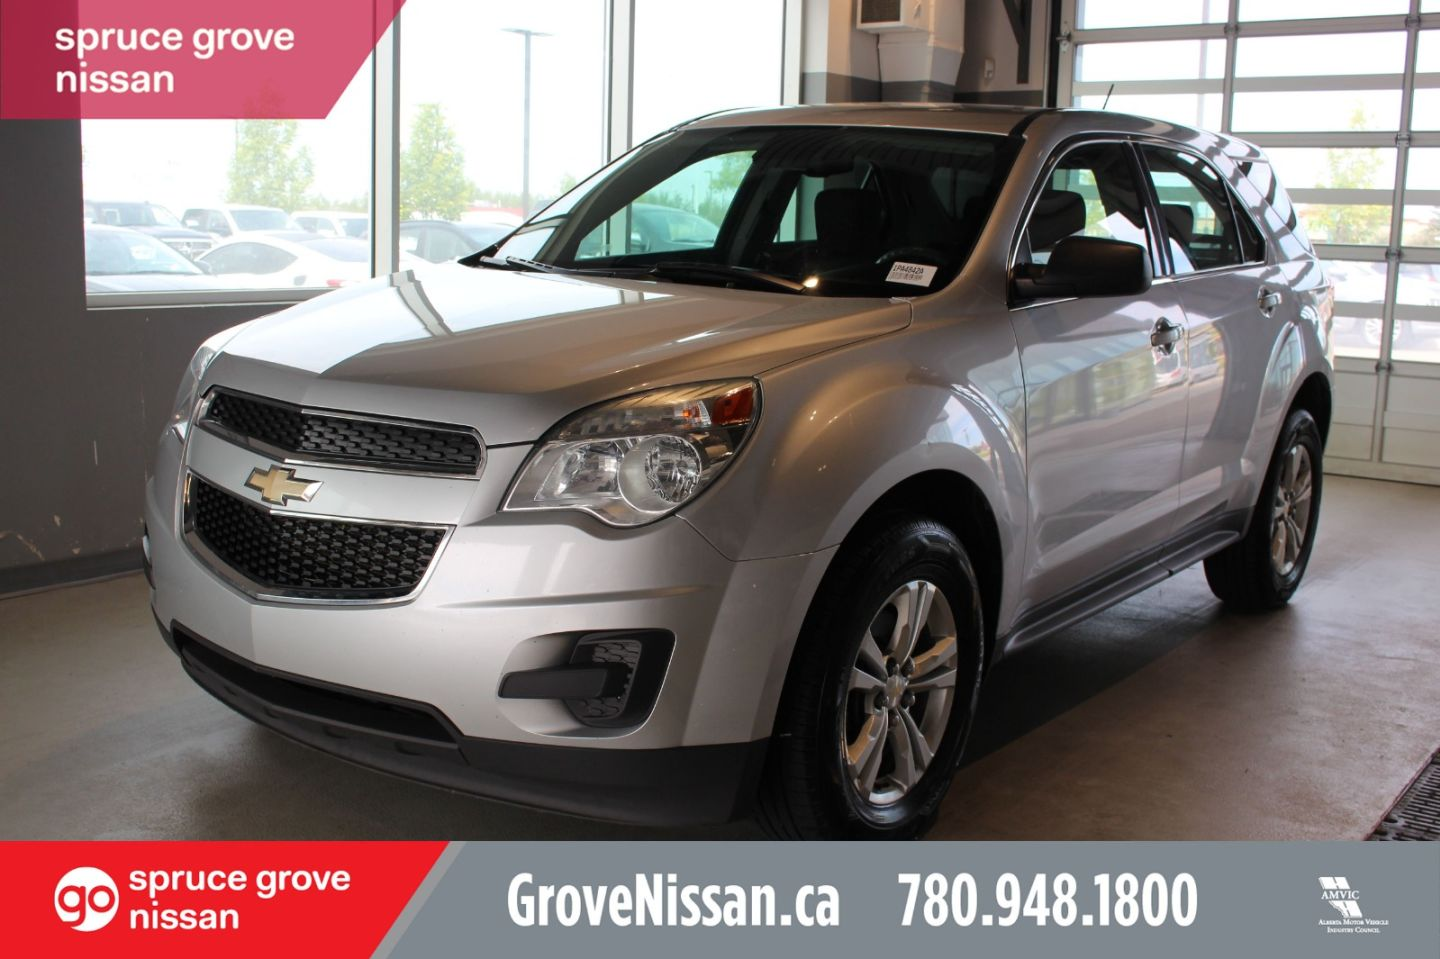 2014 Chevrolet Equinox LS for sale in Spruce Grove, Alberta